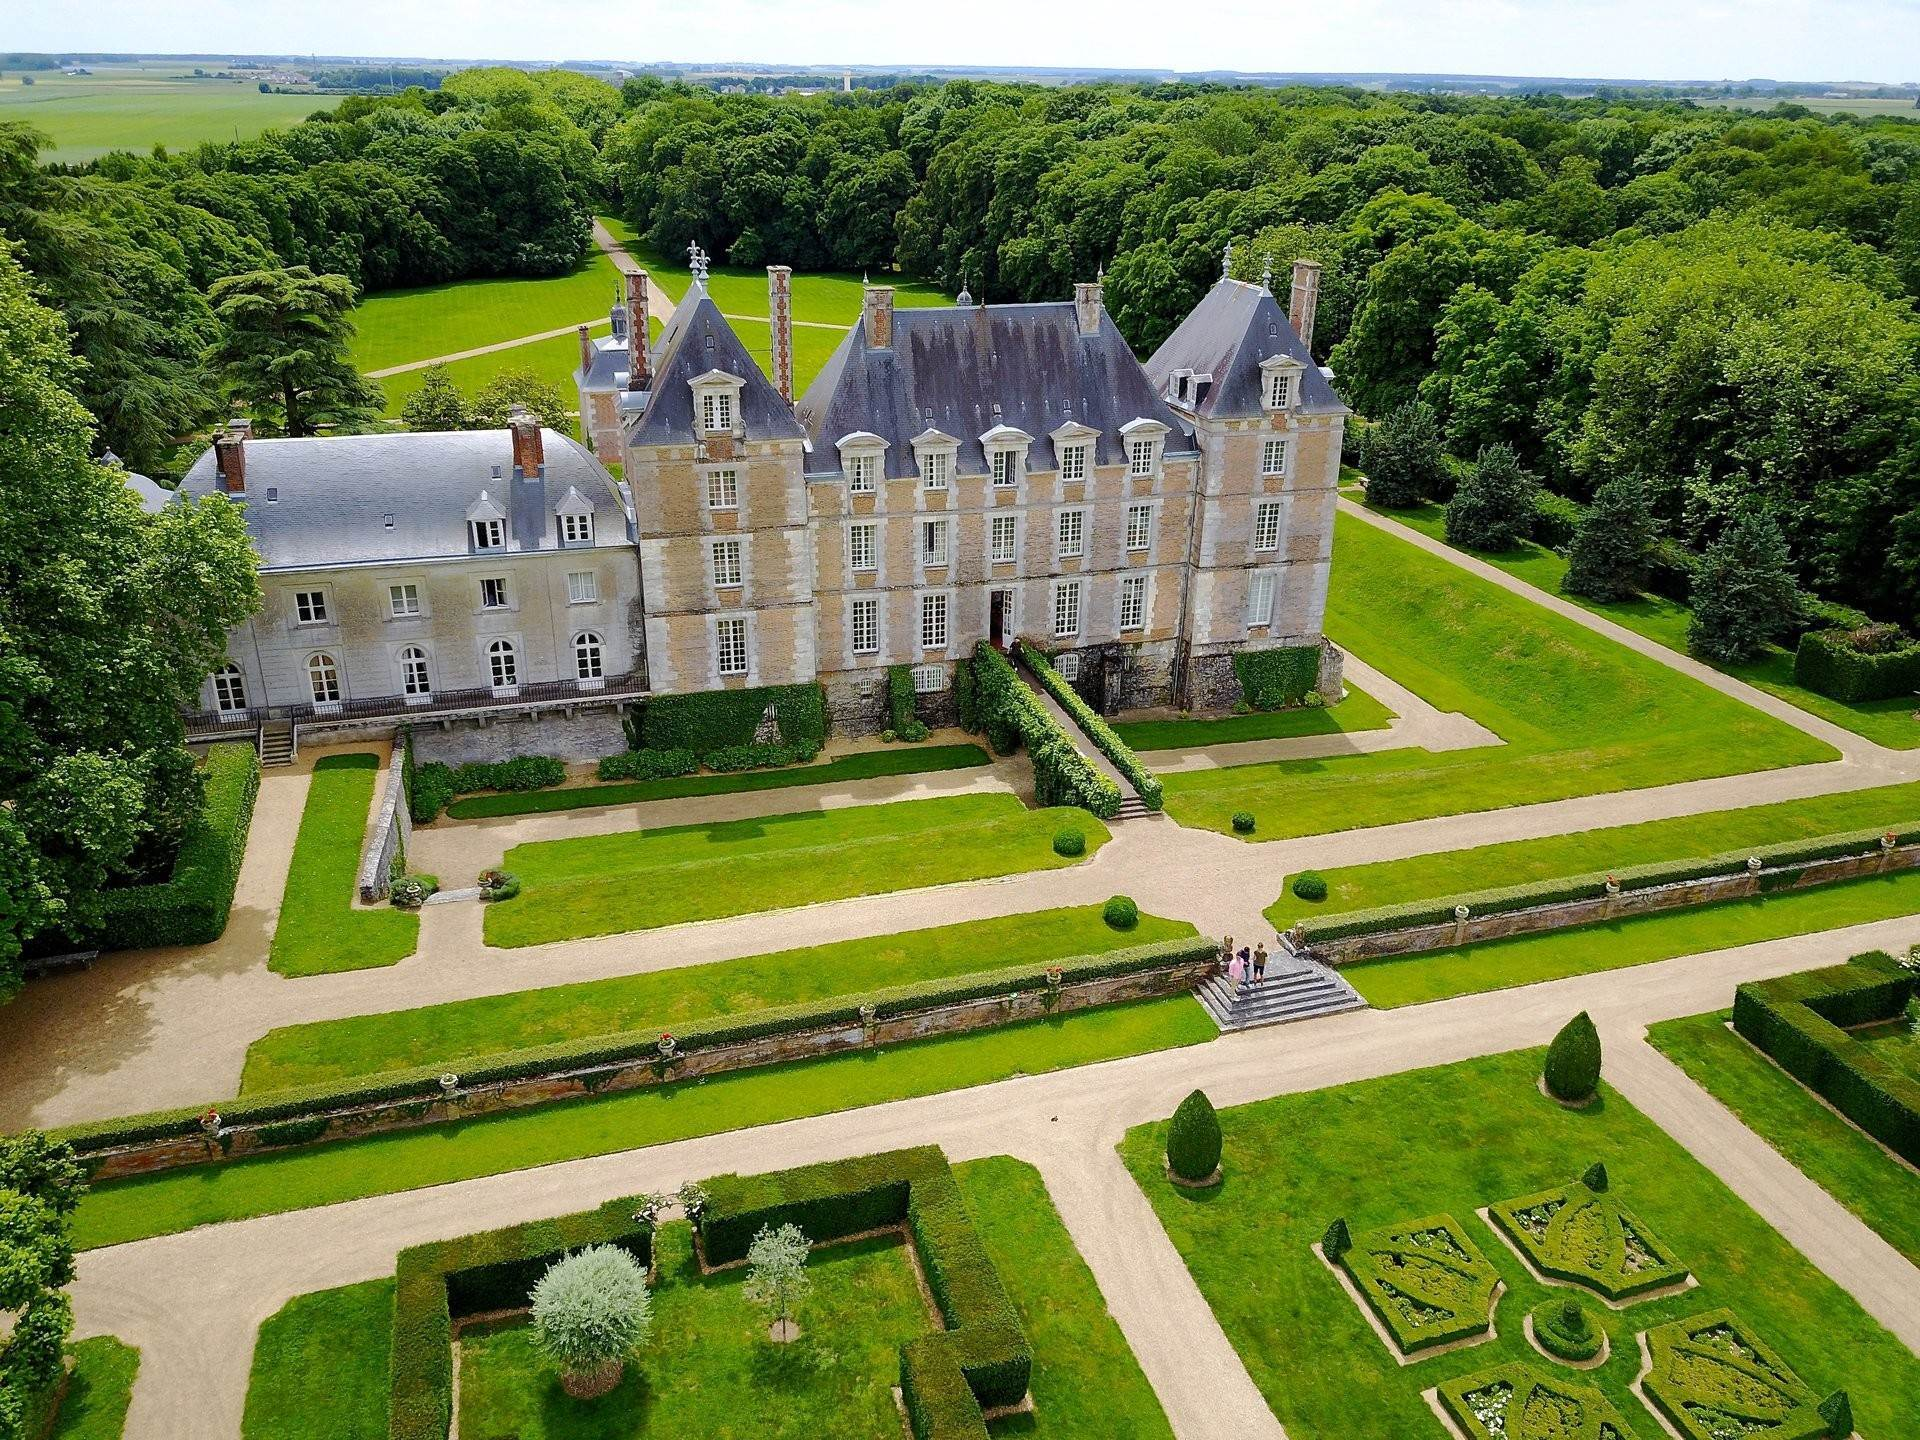 5. Ville / Villette per Vendita alle ore An exceptional listed Louis XIII style chateau set in 40 enclosed hectares with formal French gardens. An architectural gem Blois, Loir et Cher,41000 Francia